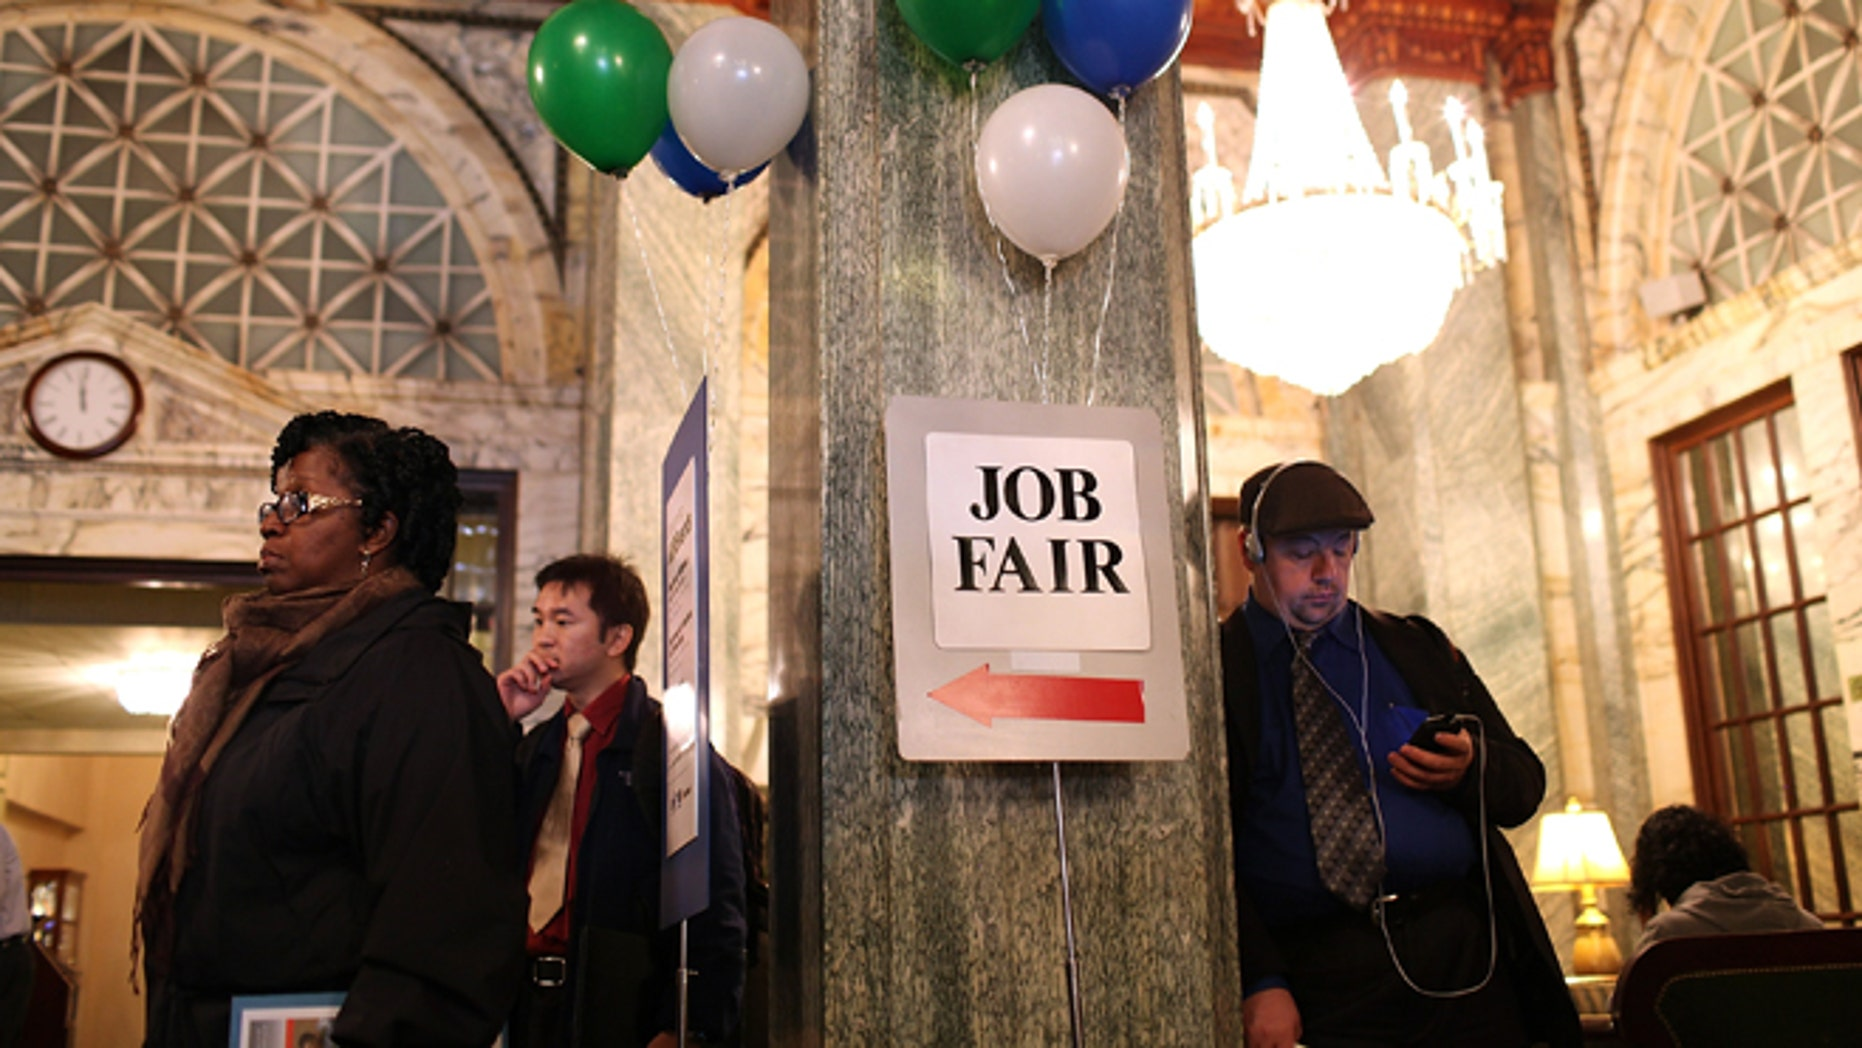 SAN FRANCISCO, CA - NOVEMBER 09:  Job seekers wait in line to enter the San Francisco Hire Event job fair on November 9, 2011 in San Francisco, California.  The national unemployment rate dipped this past month to 9 percent in October after employers added 80,000 jobs.  (Photo by Justin Sullivan/Getty Images)